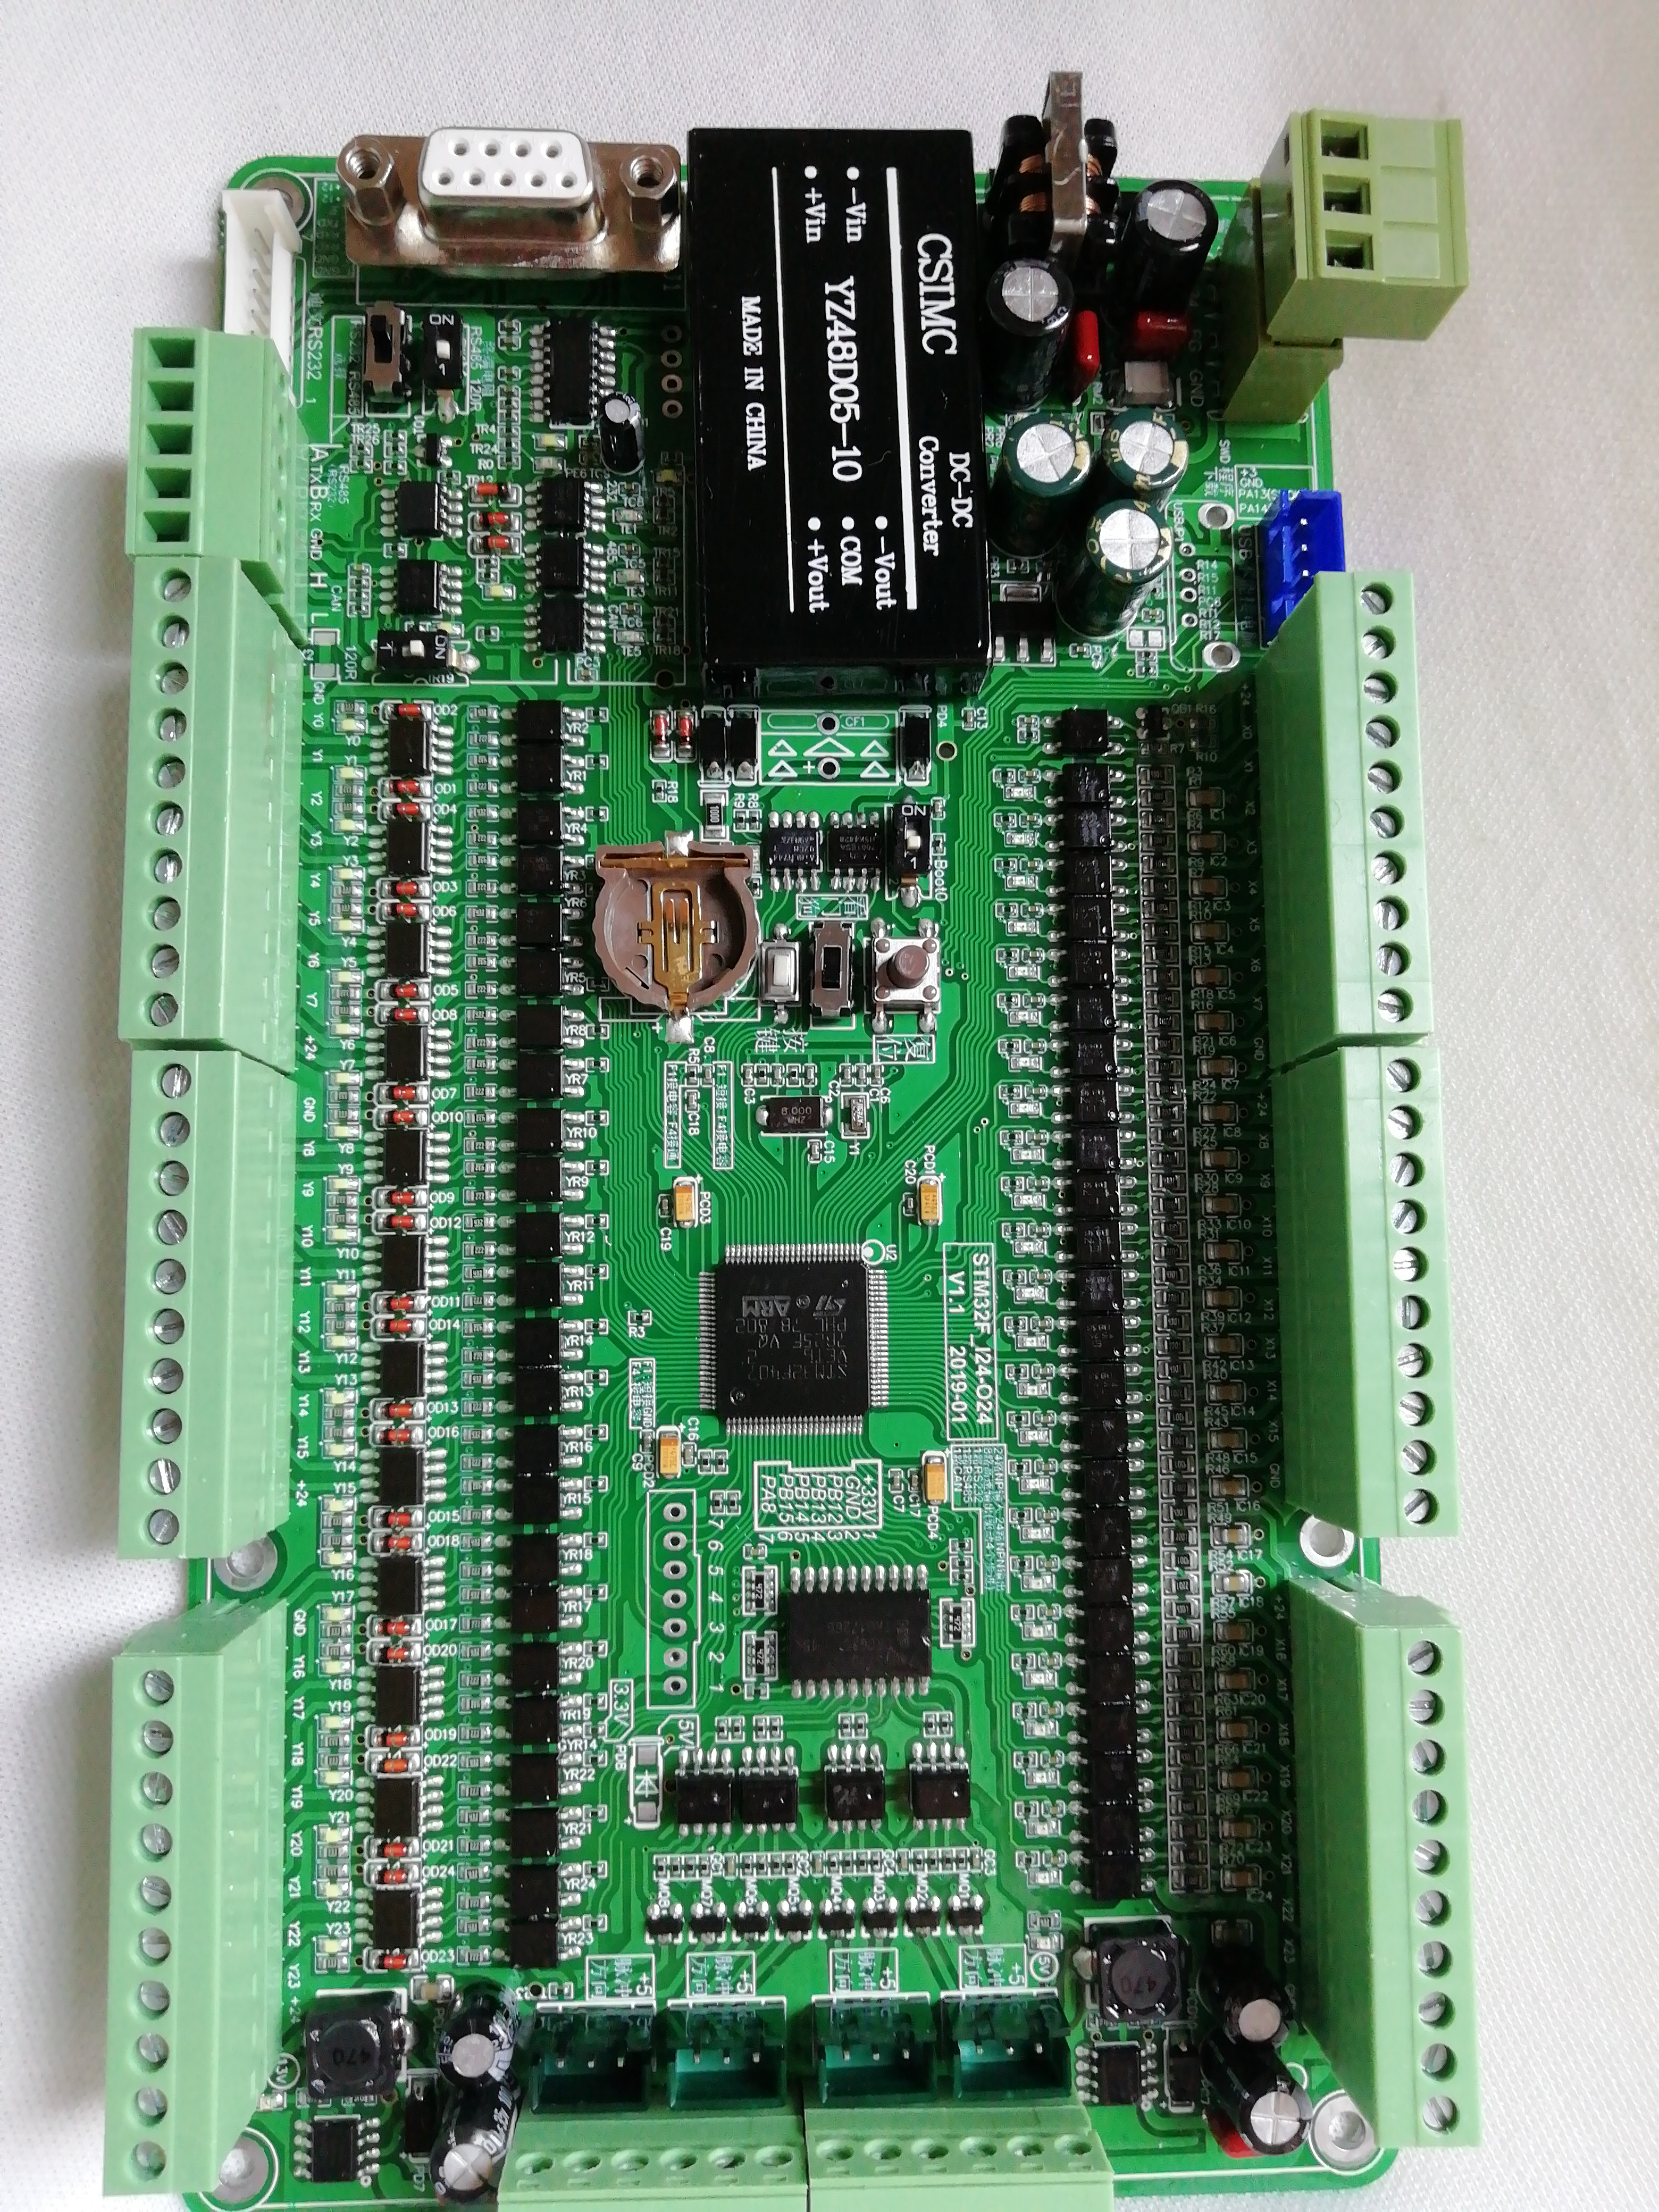 KEIL 520 Programming of STM32F103VCT6 Industrial Control Board+4-way Step Motor Pulse Control RS232 RS485 C Language ProgrammingKEIL 520 Programming of STM32F103VCT6 Industrial Control Board+4-way Step Motor Pulse Control RS232 RS485 C Language Programming